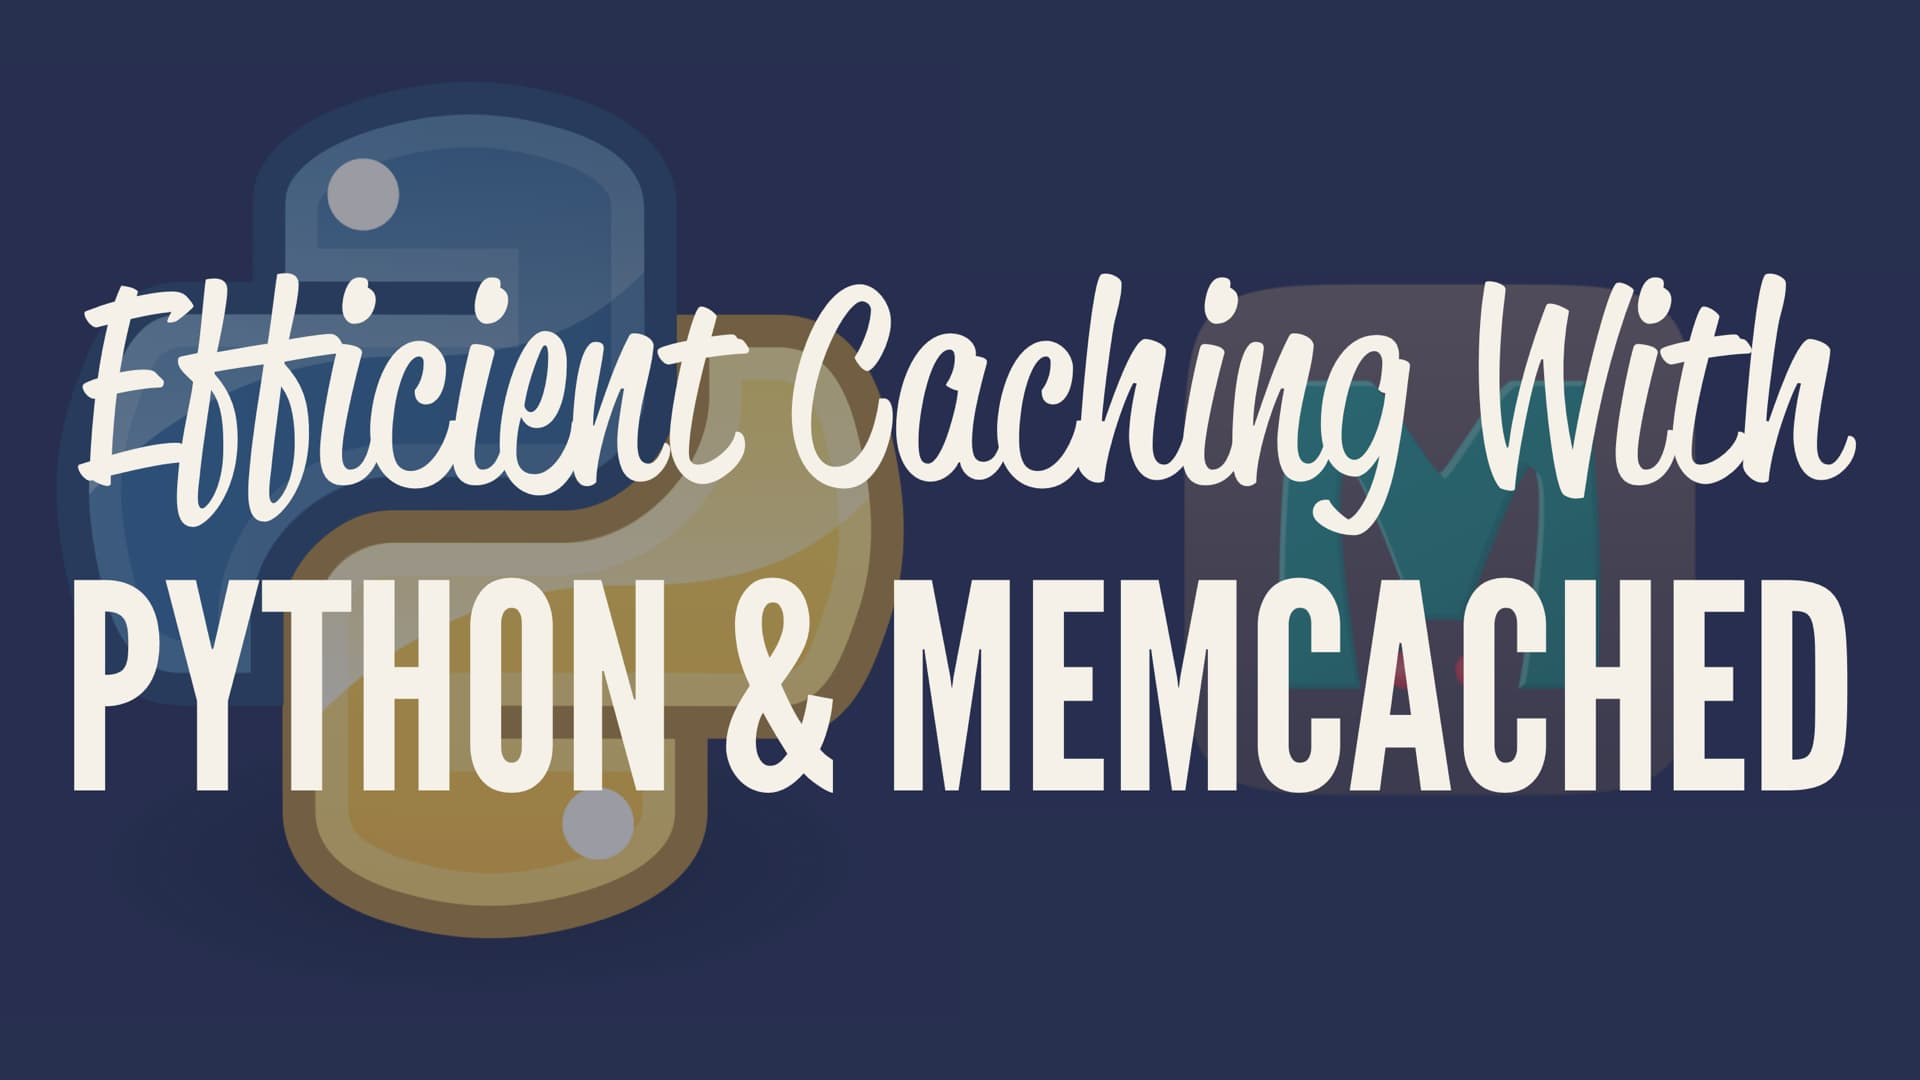 Python + Memcached for Efficient Caching